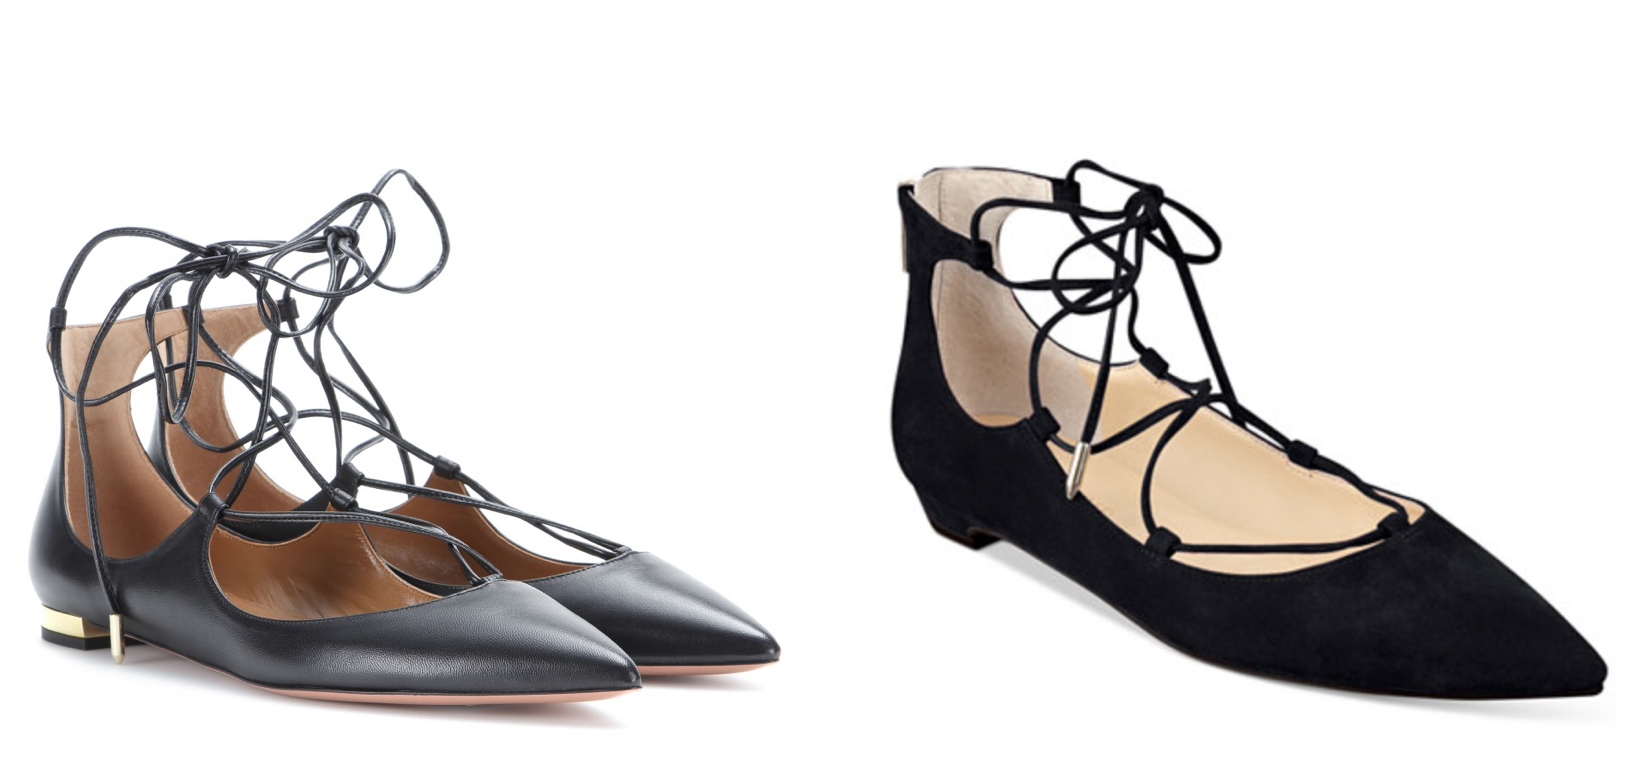 Aquazzura Christie flats (left) & Ivanka Trump's Tropica flats (right)